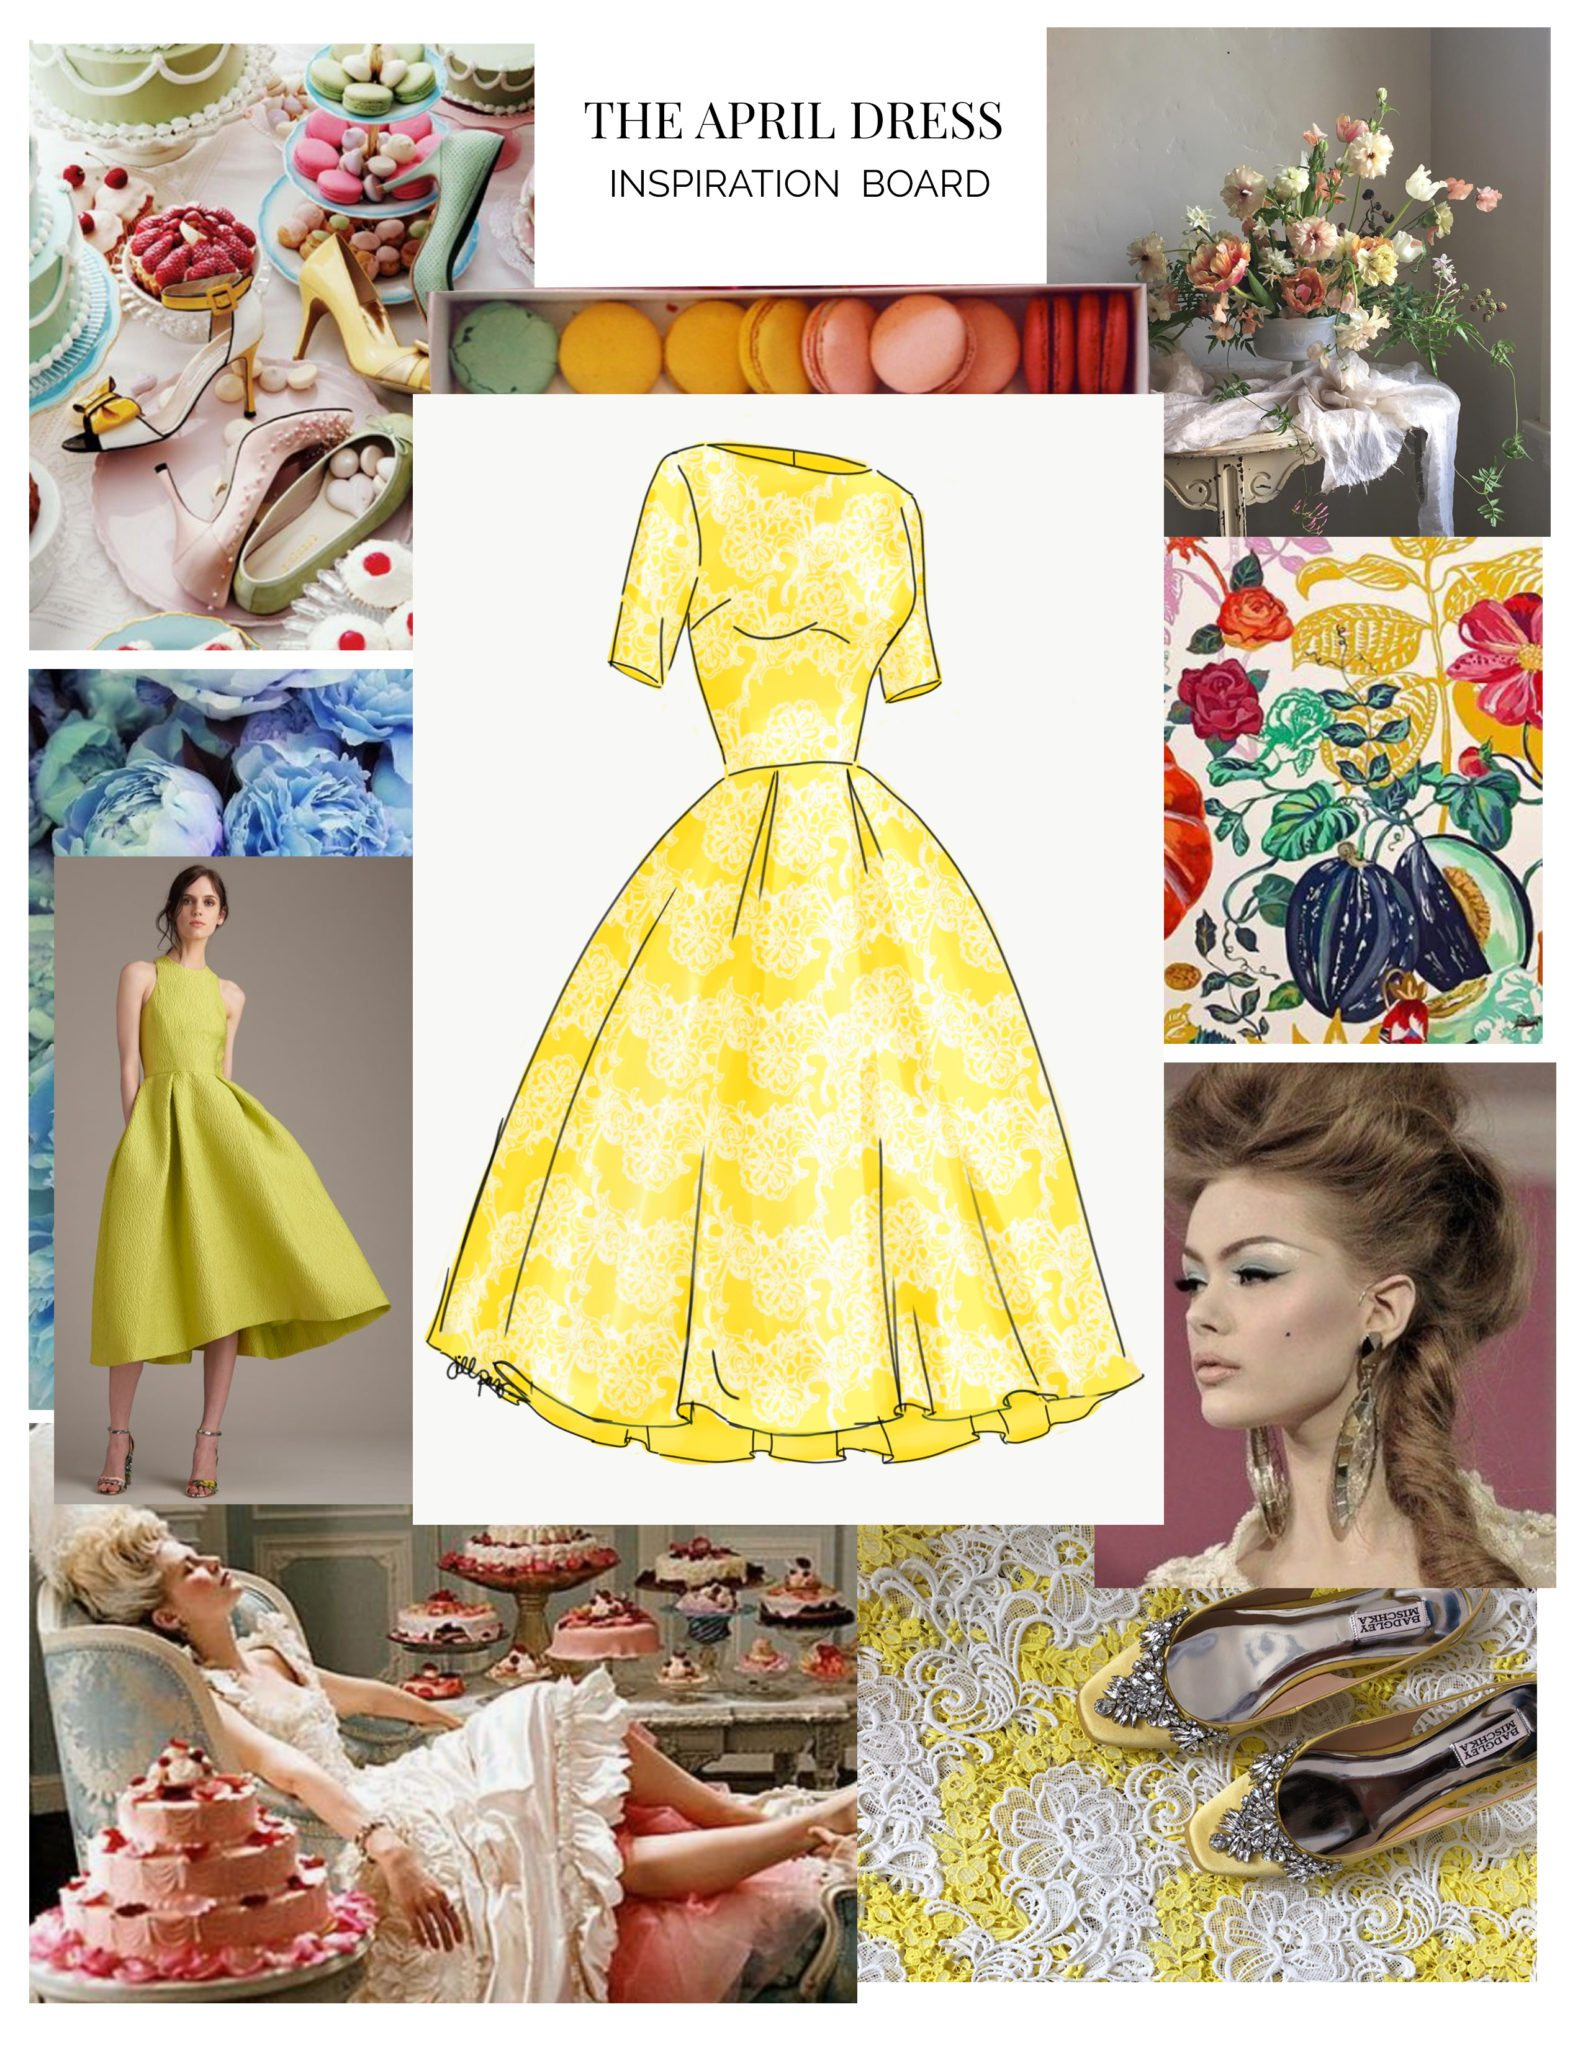 The April Dress Inspiration Board, part of The Monthly Dress Series by Leanne Barlow